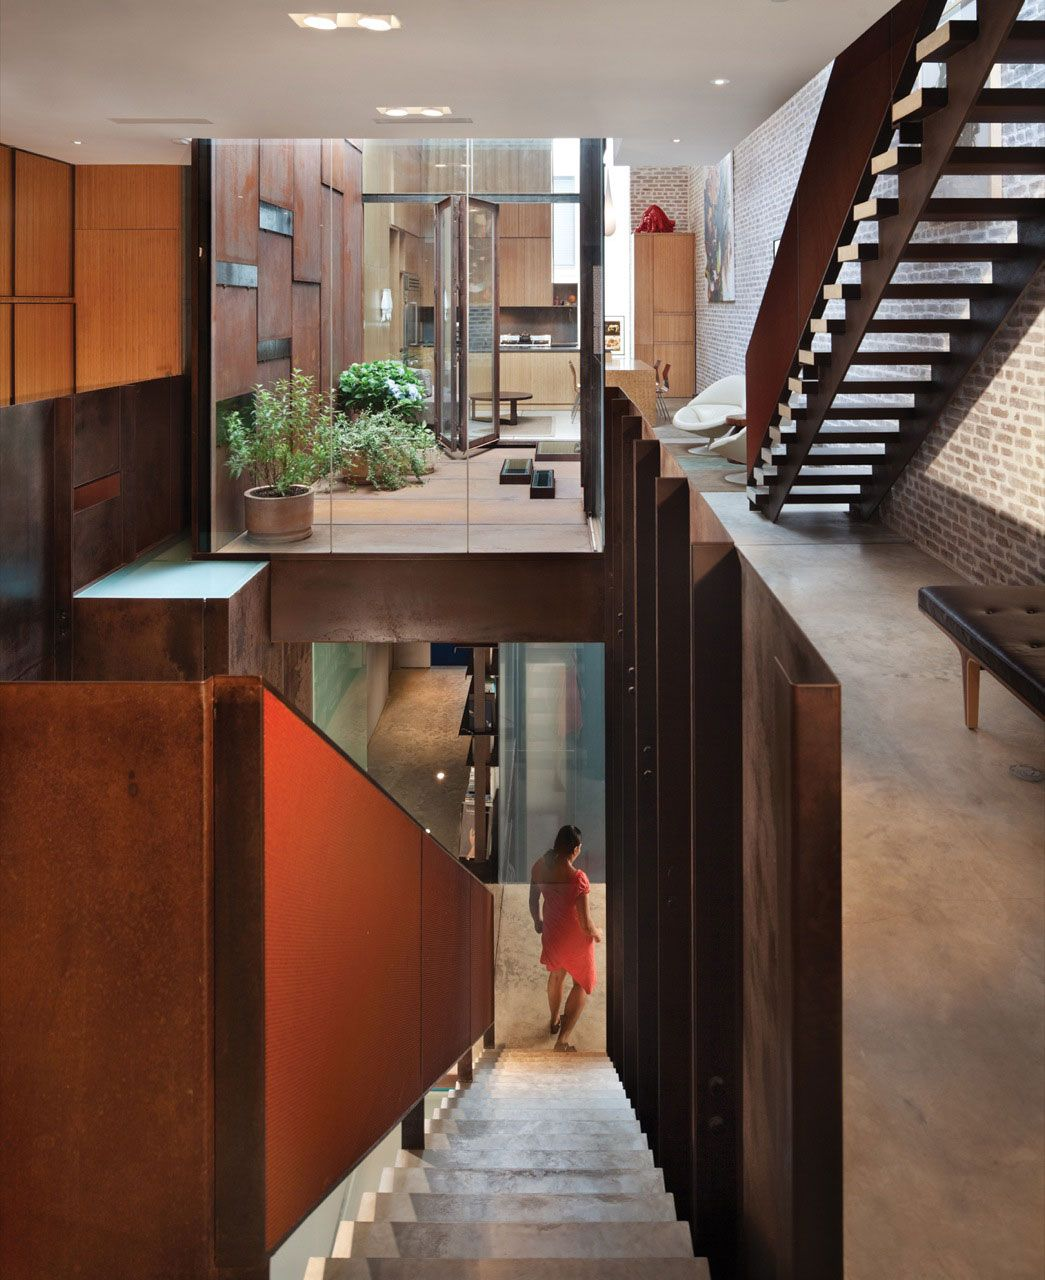 Inverted-Warehouse-Townhouse-06